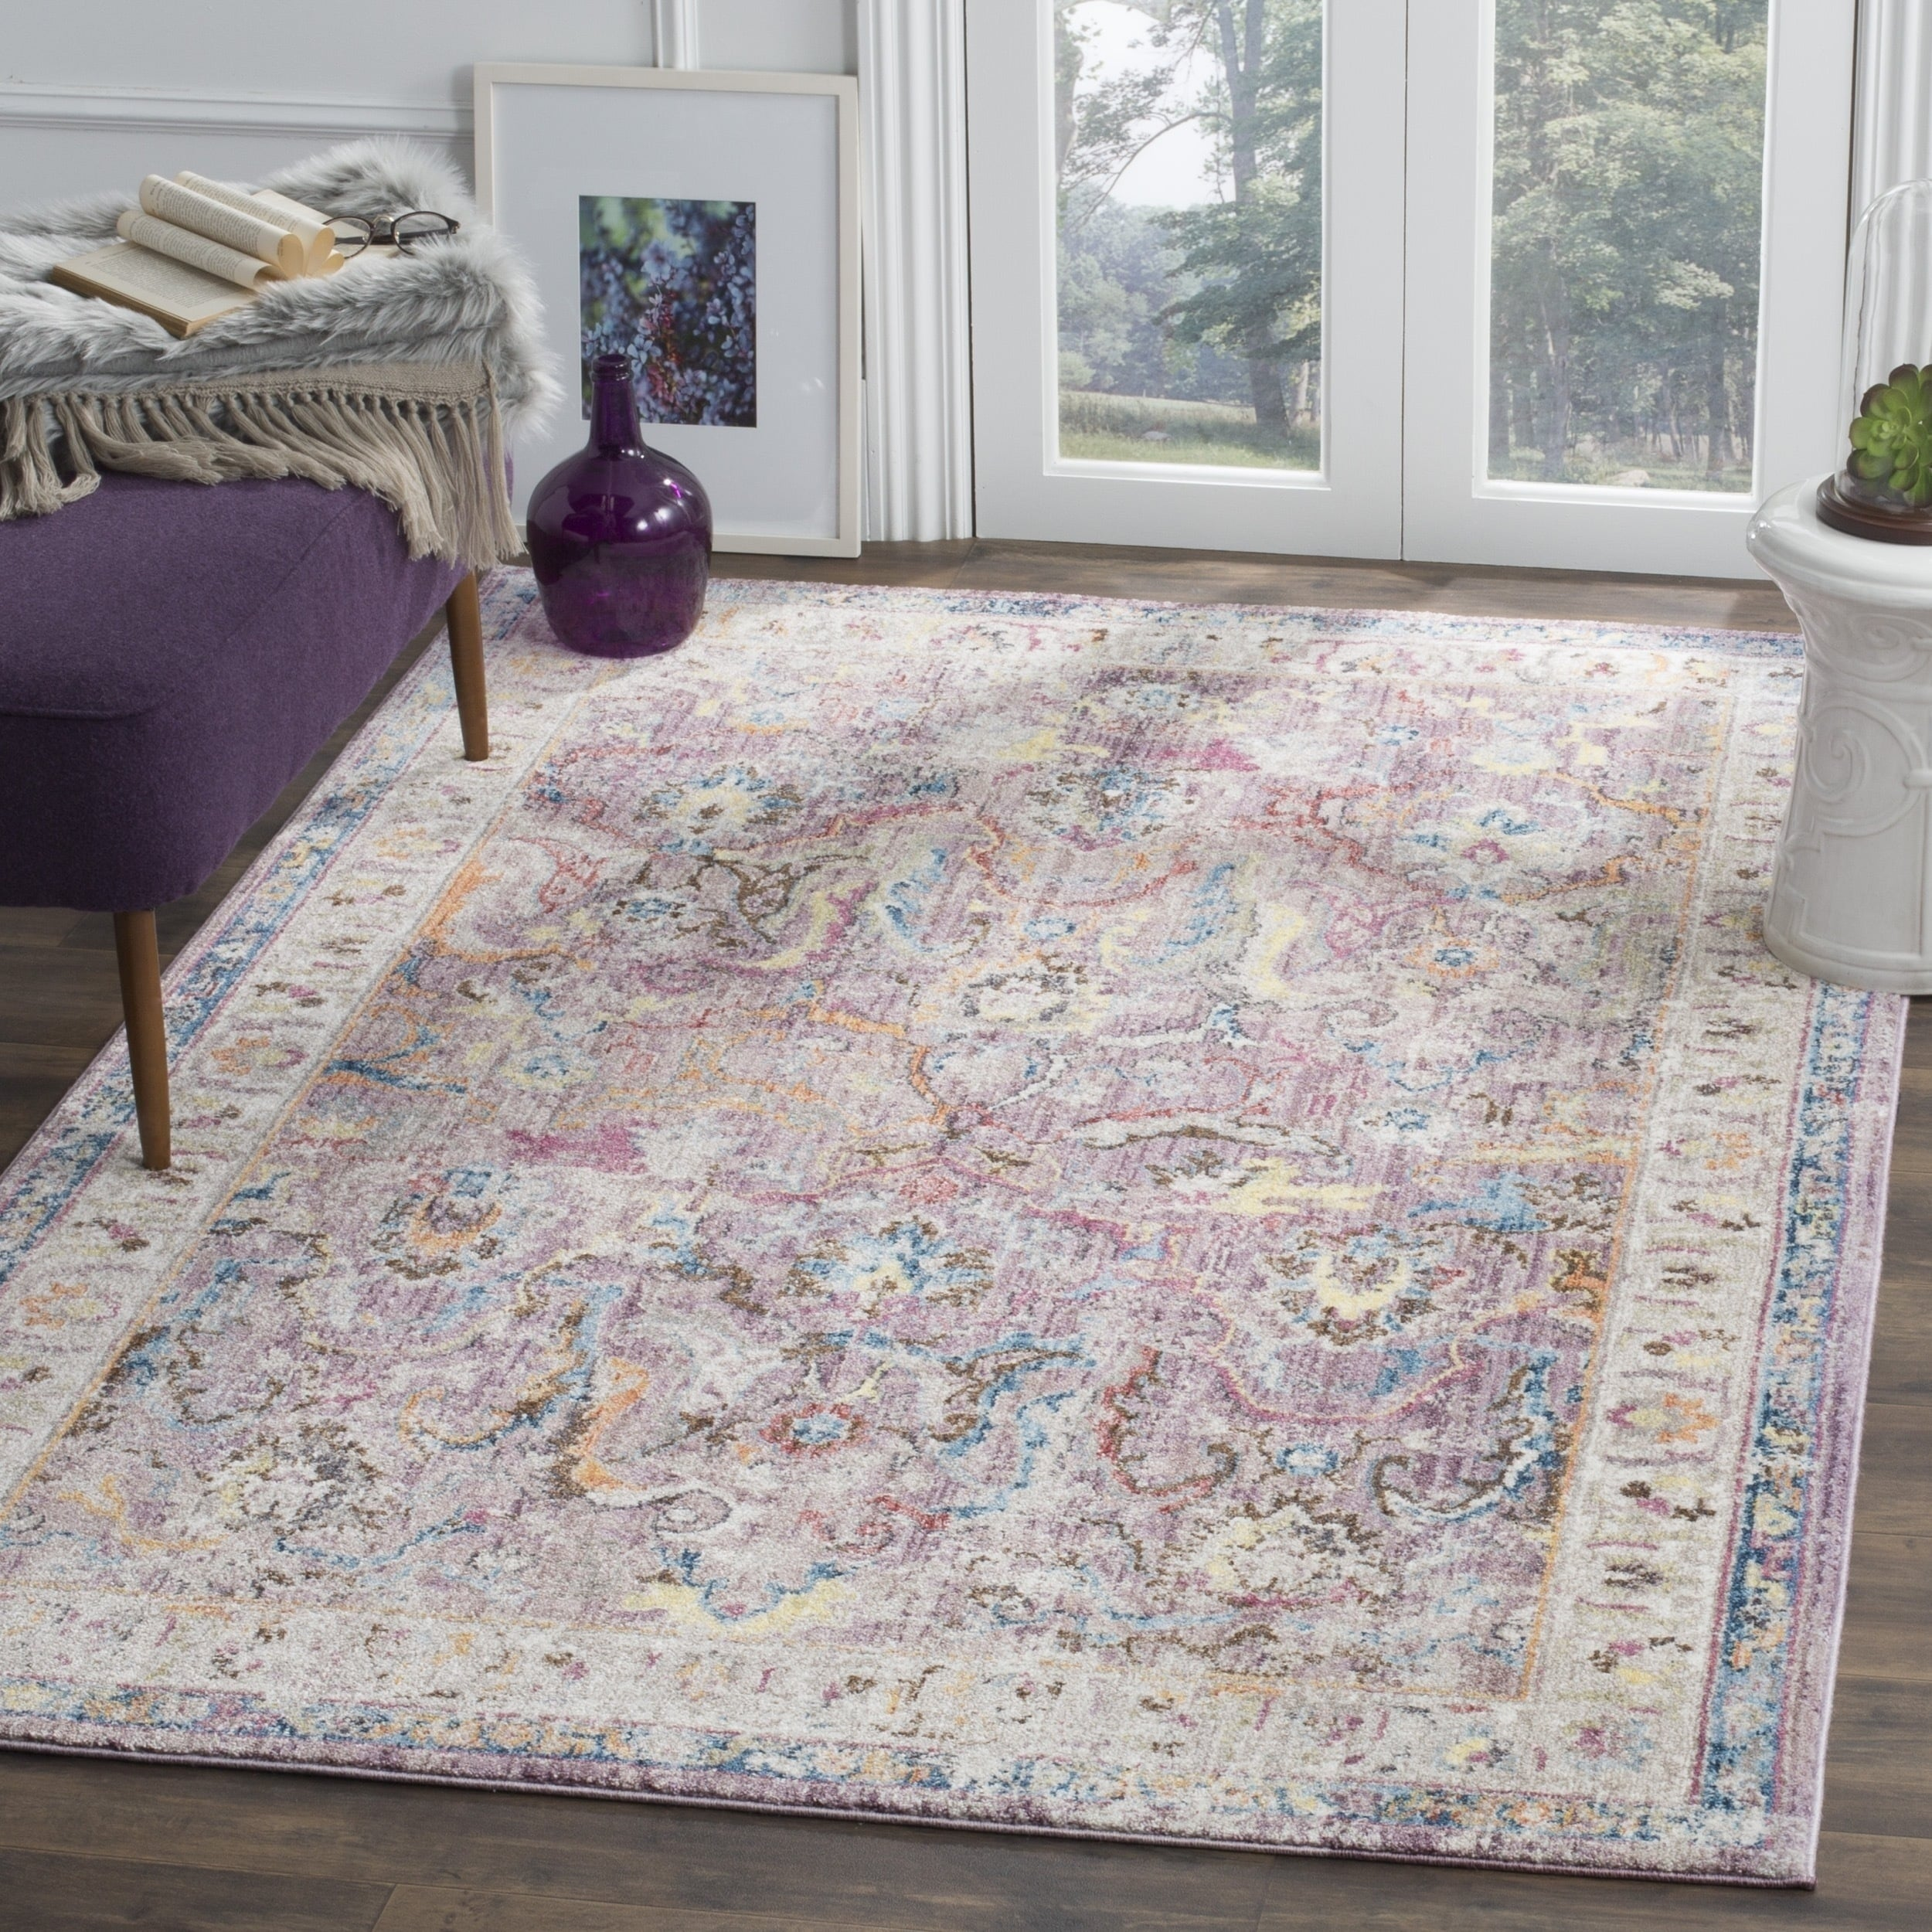 Shop Safavieh Bristol Transitional Purple Grey Polyester Area Rug